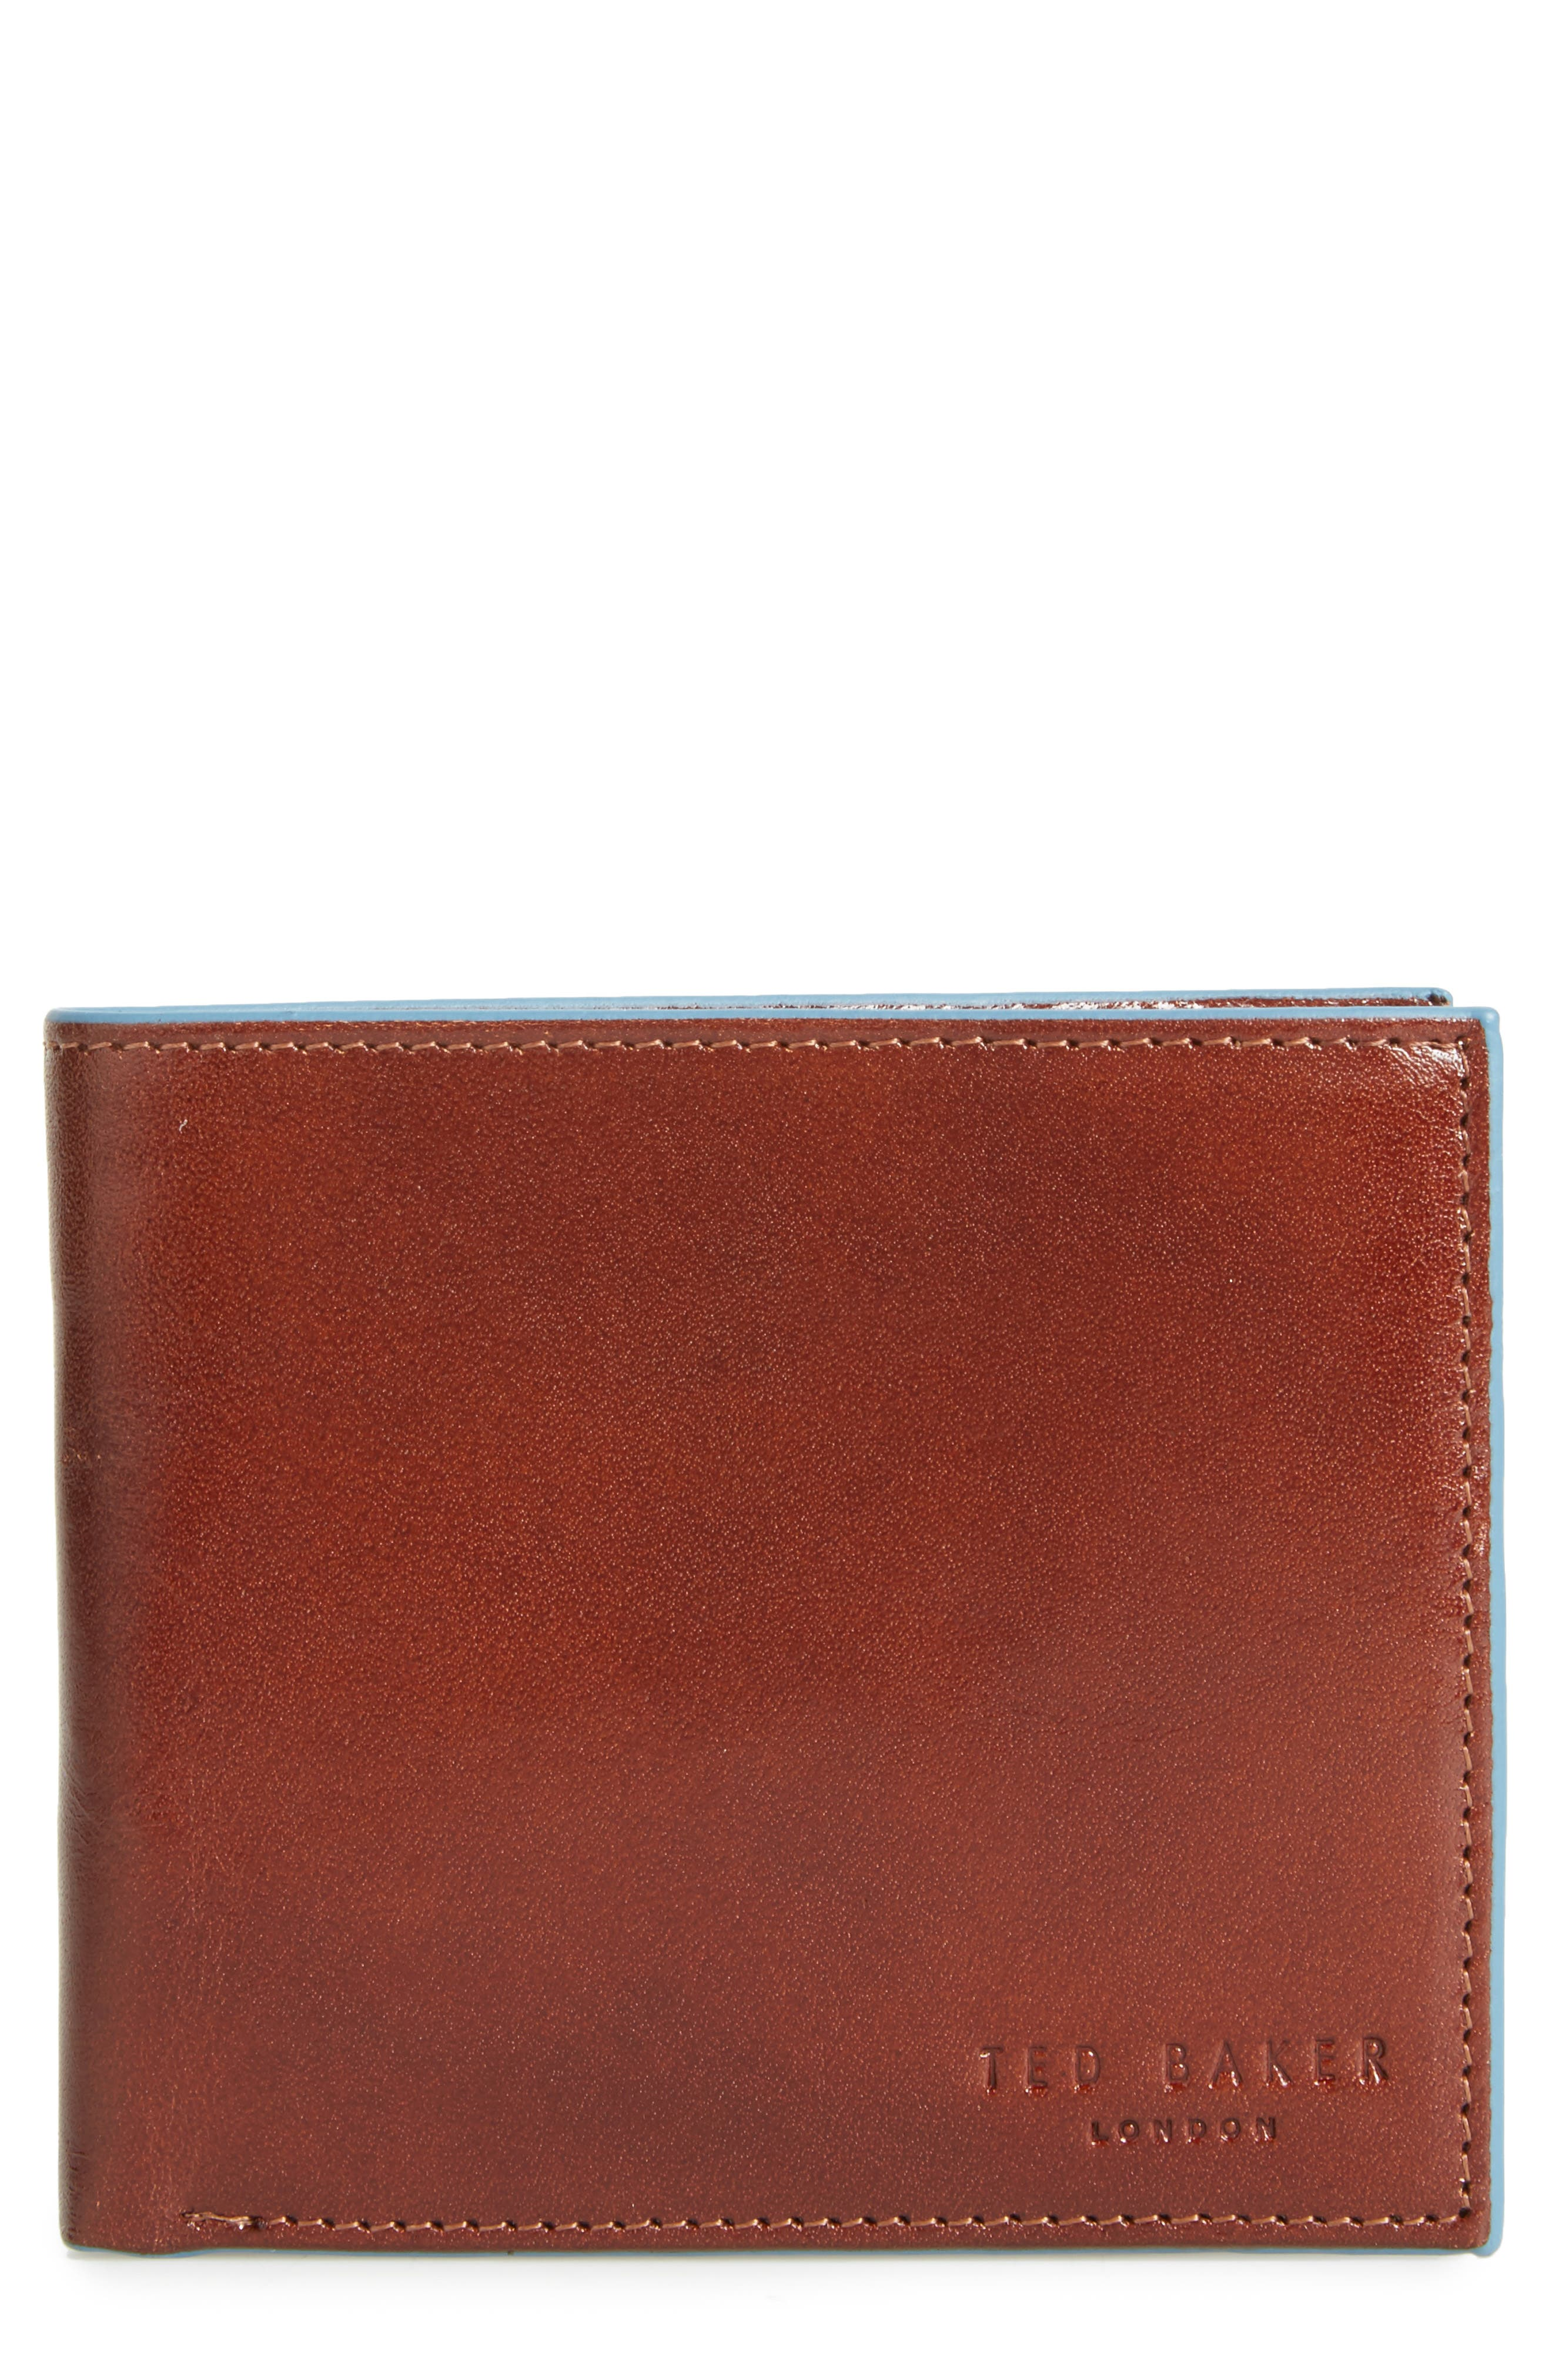 Ted Baker London Loganz Leather Wallet